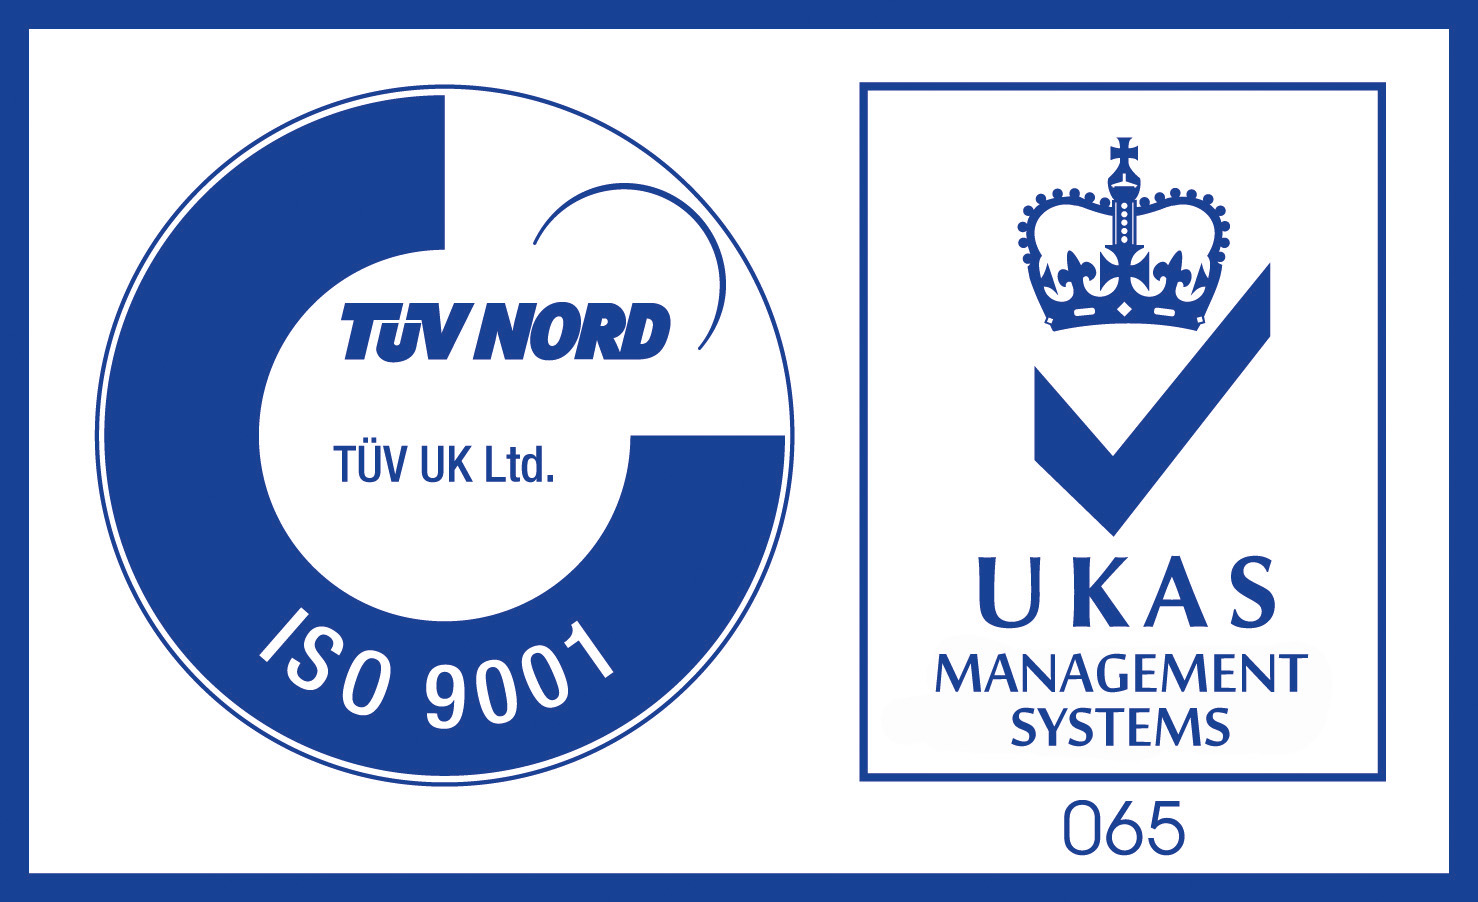 9001 TUV UK - UKAS